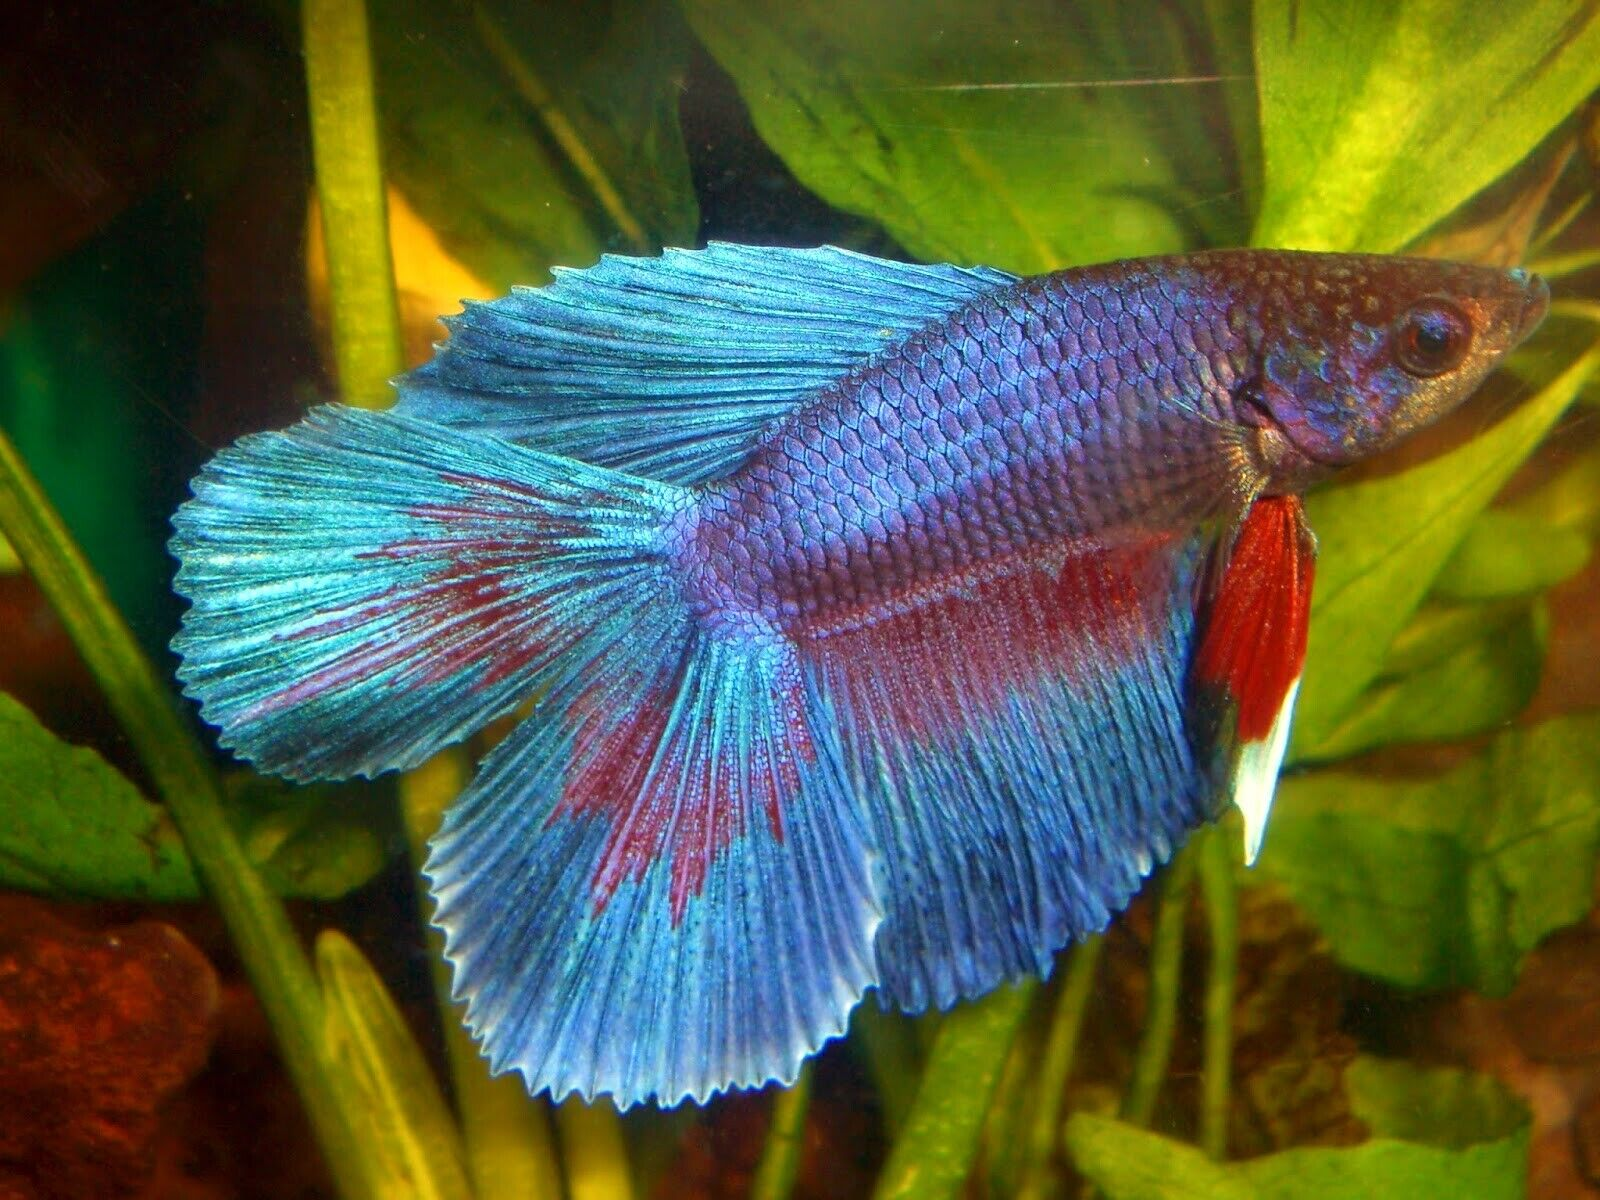 10 (ten) Assorted Betta Double Tail SD Males (Siamese Fighting Fish)